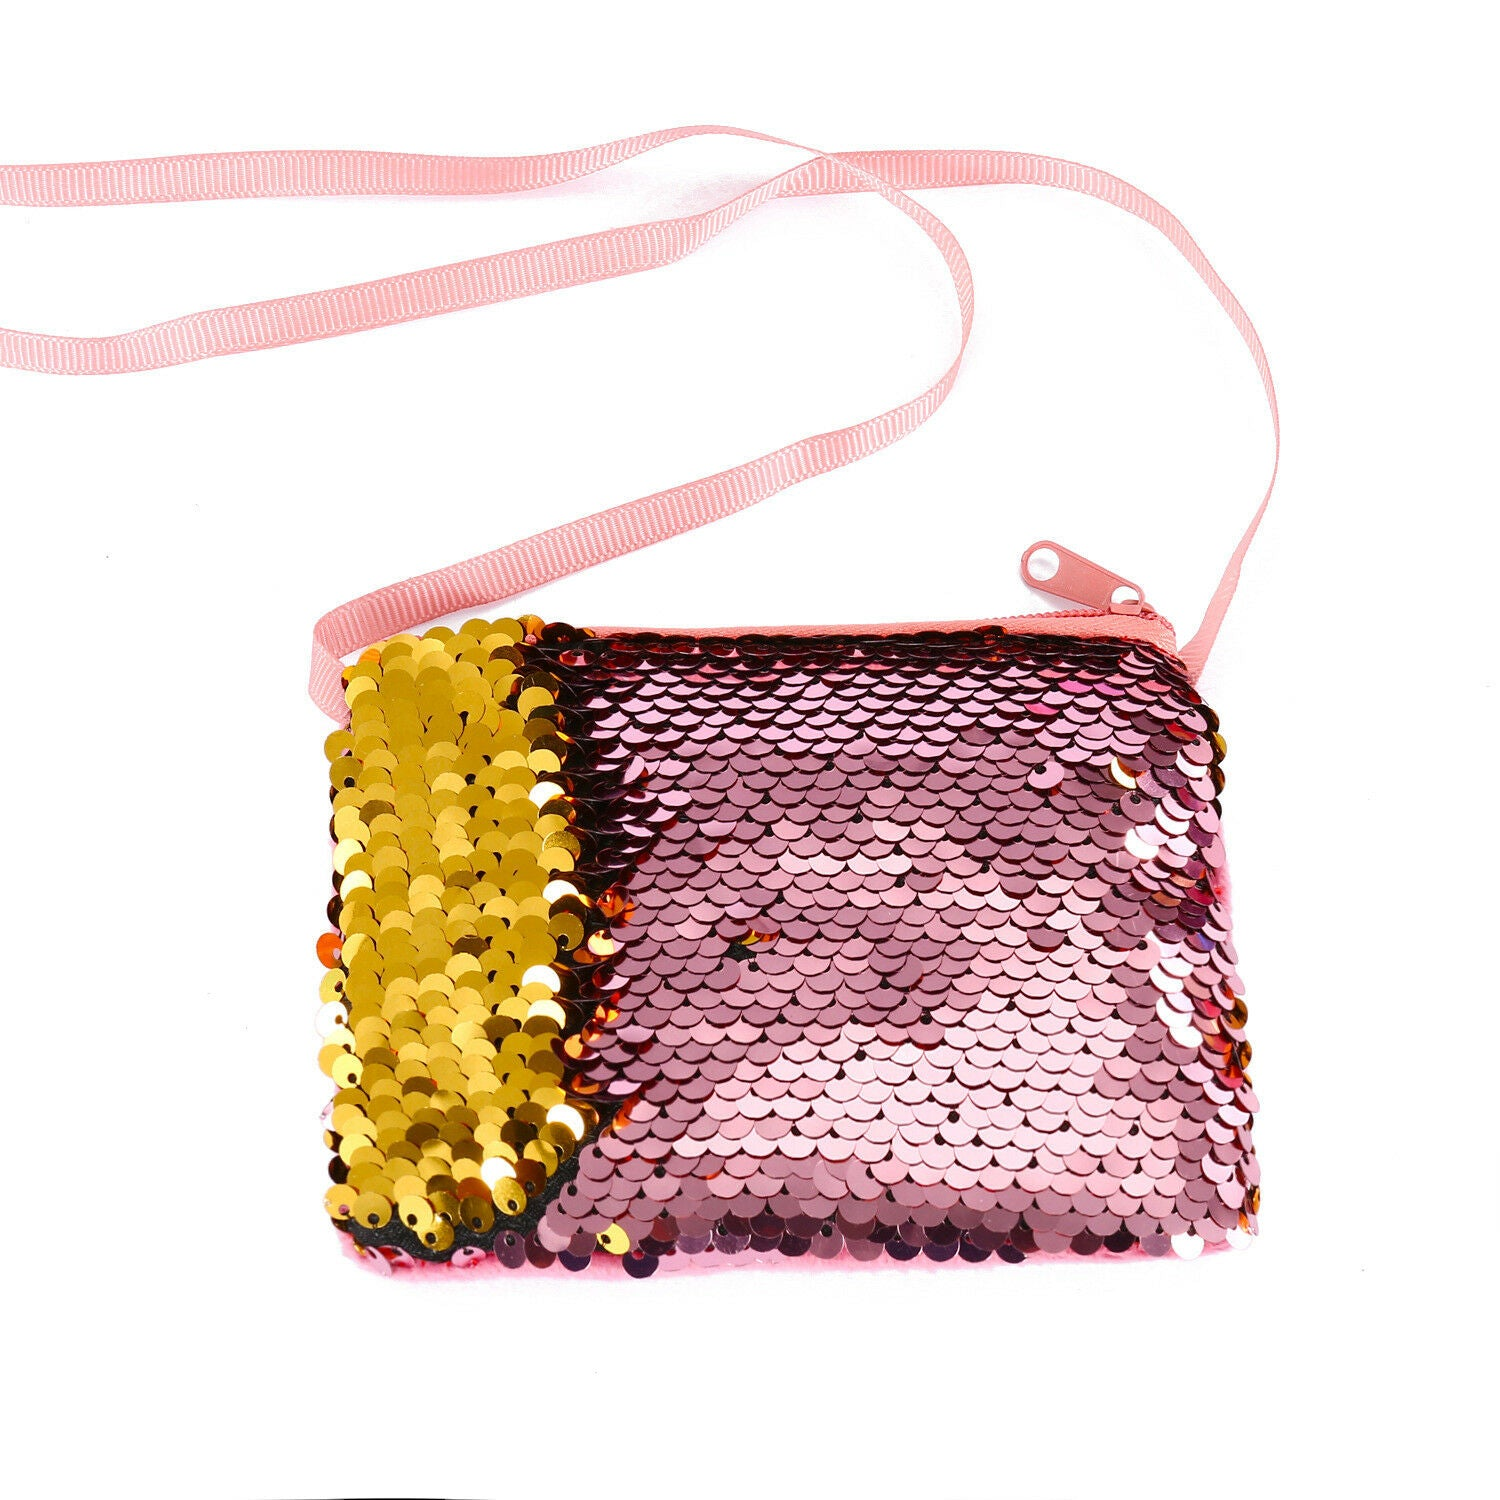 Baby Sequins Coin Purse Change Wallet Kids Pouch Glittering Clutch Bags Satchel Blue Pink Purple Red Yellow Champagne